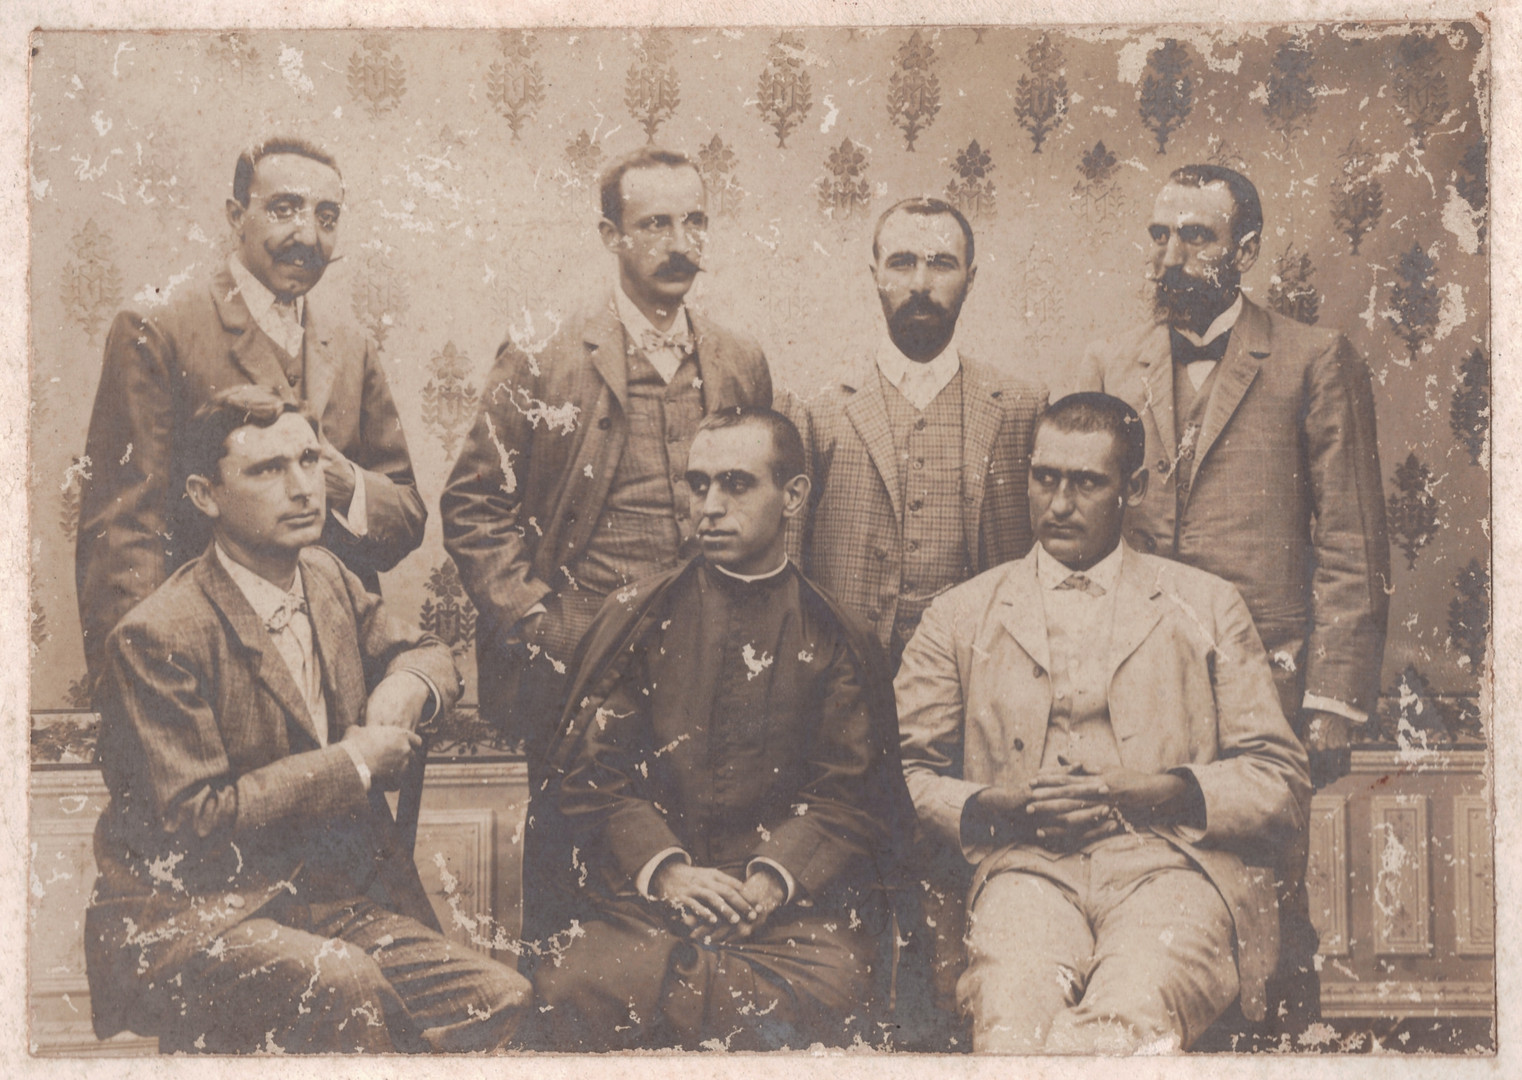 Group photograph with some of the expeditioners: seated, on the far right, Jaume Antoni Clar Vicens (?). Standing, second on the left is the storekeeper, Marc Vidal; third is the purser, Llorenç Bonet.